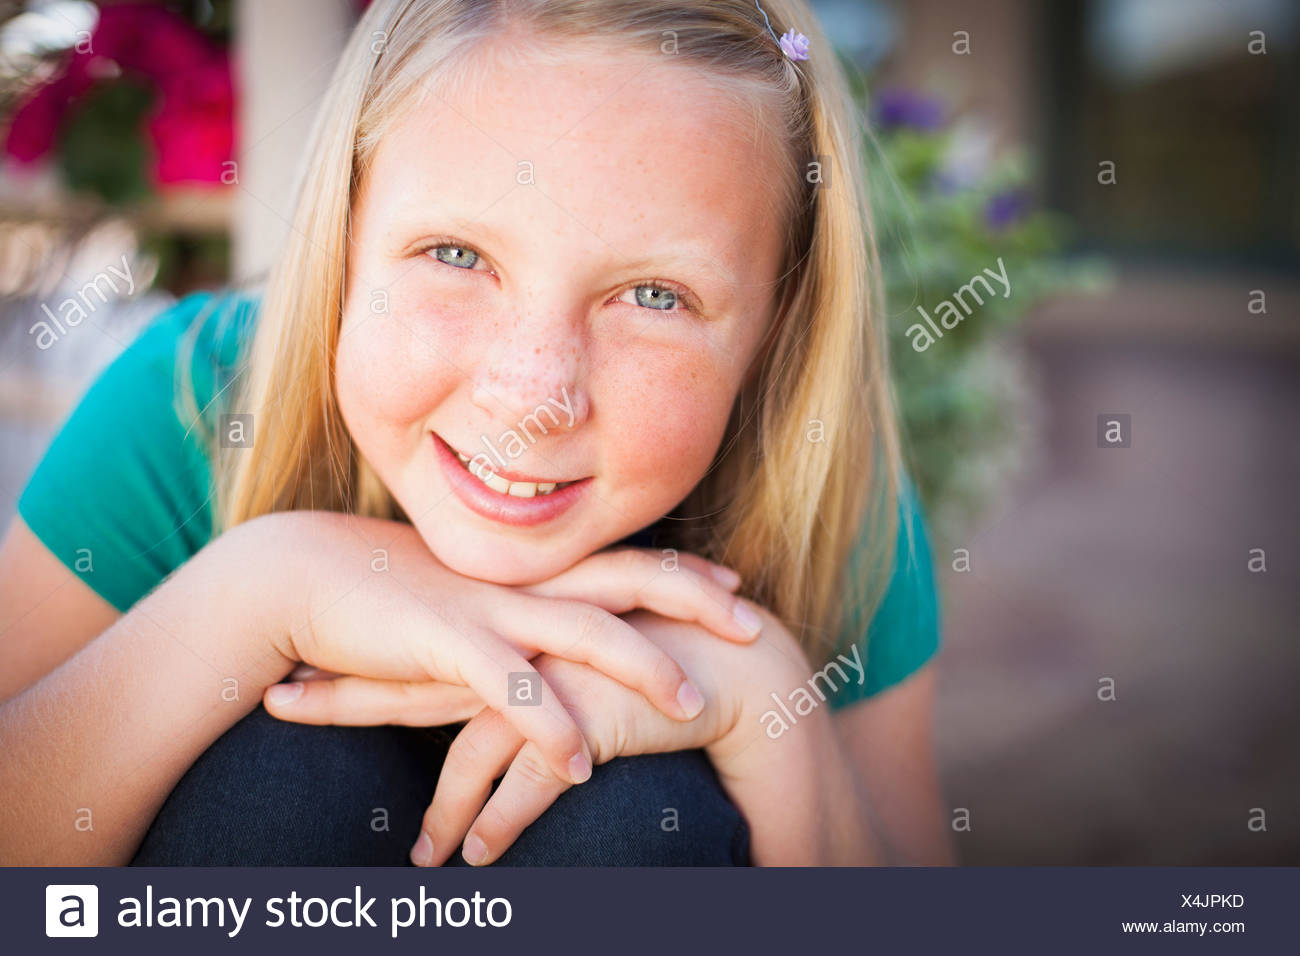 A child, a young girl sitting leaning forward and smiling. Her chin resting on her hands. - Stock Image